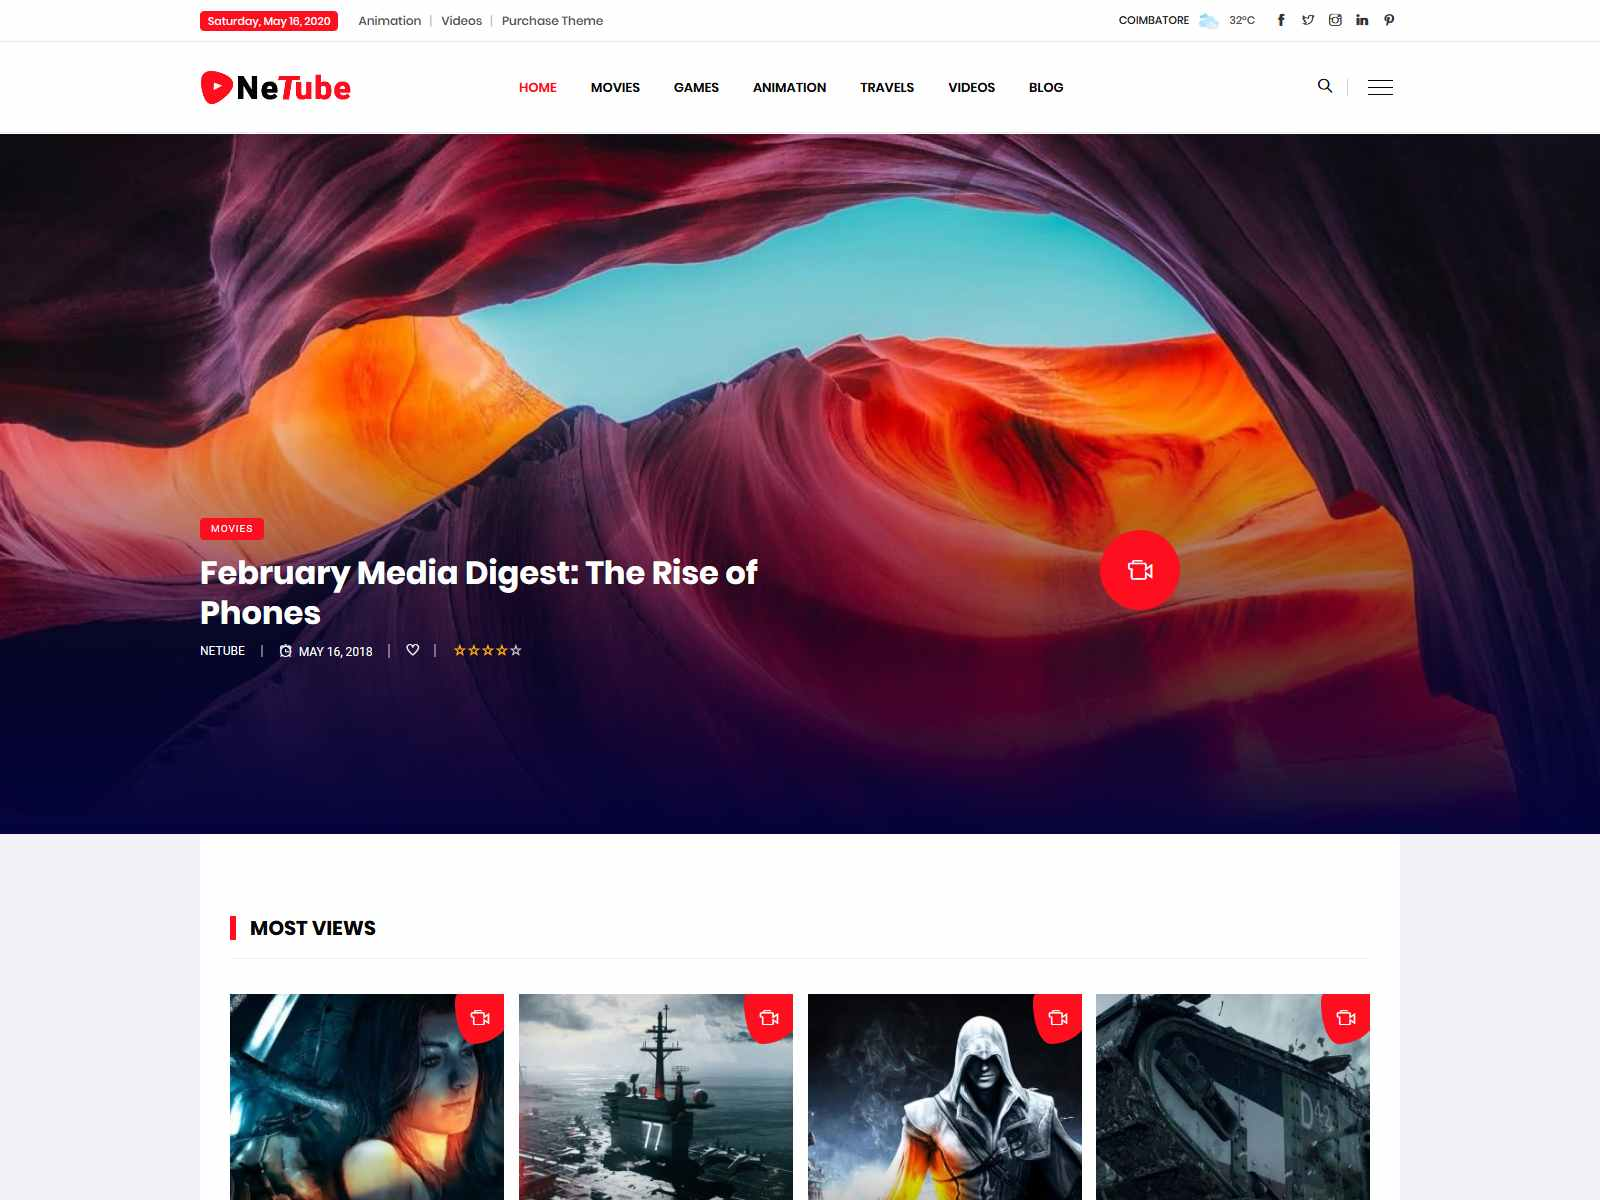 Netube - Viral Video Blog / Magazine WordPress Theme